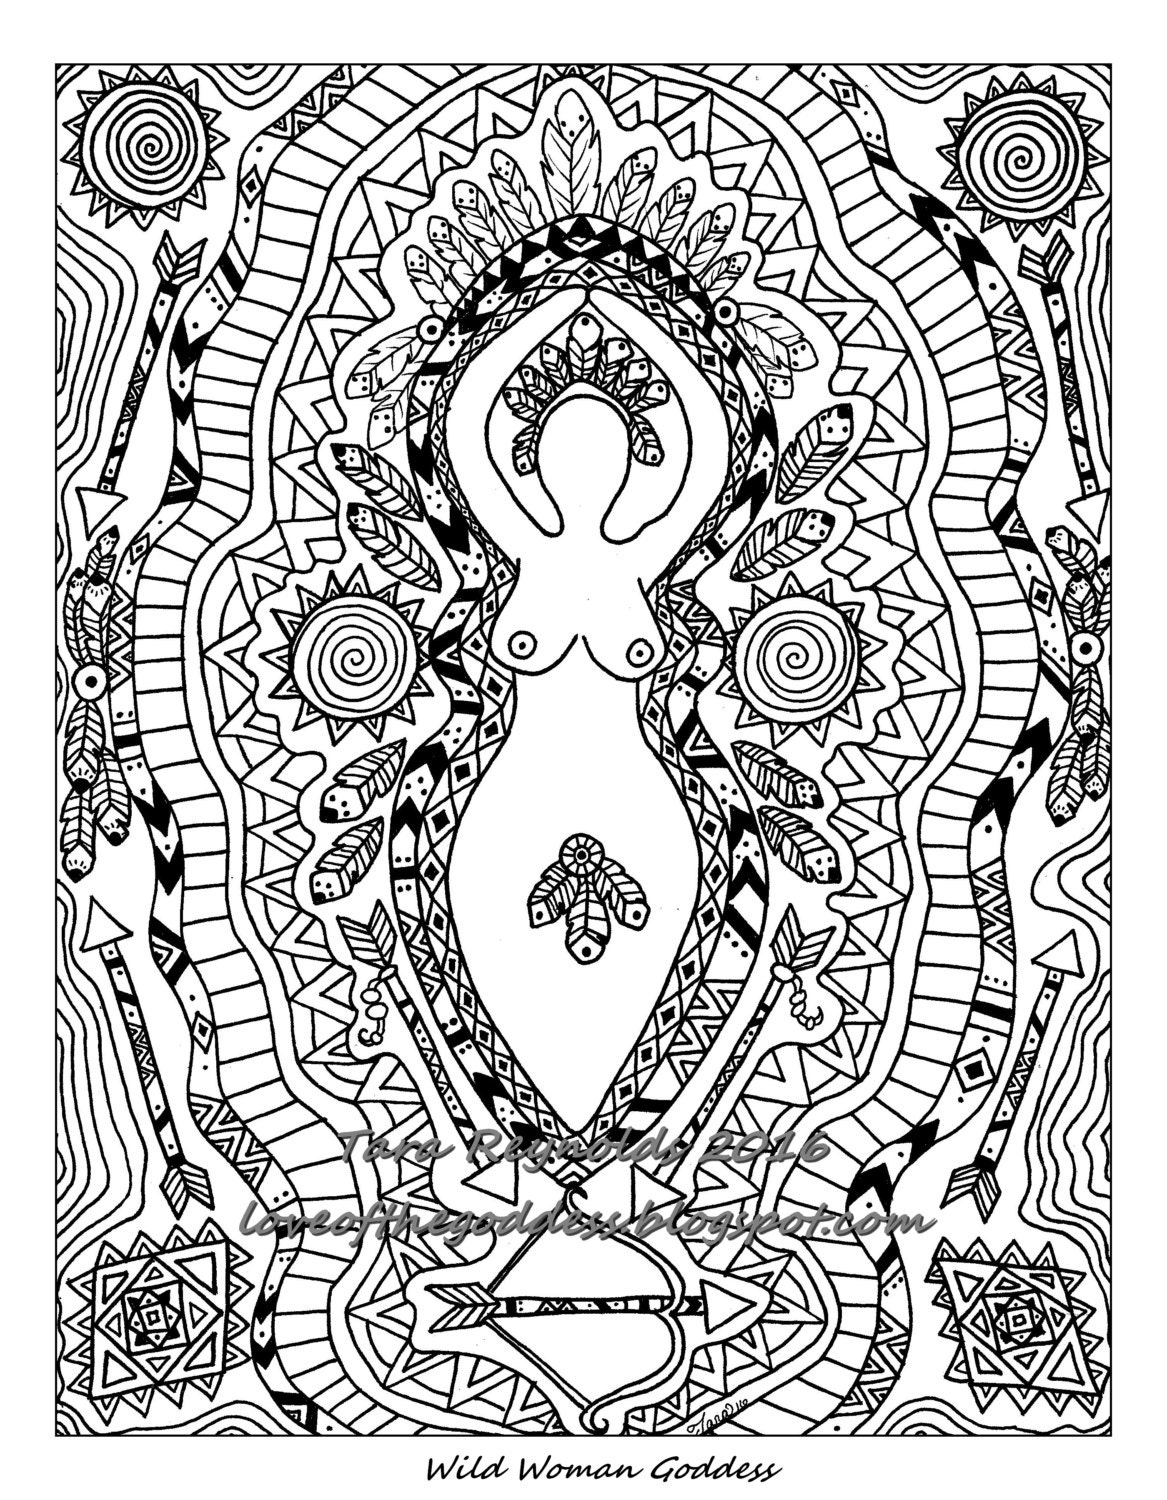 Goddess Art Coloring Pages for Adults Goddess Coloring Page